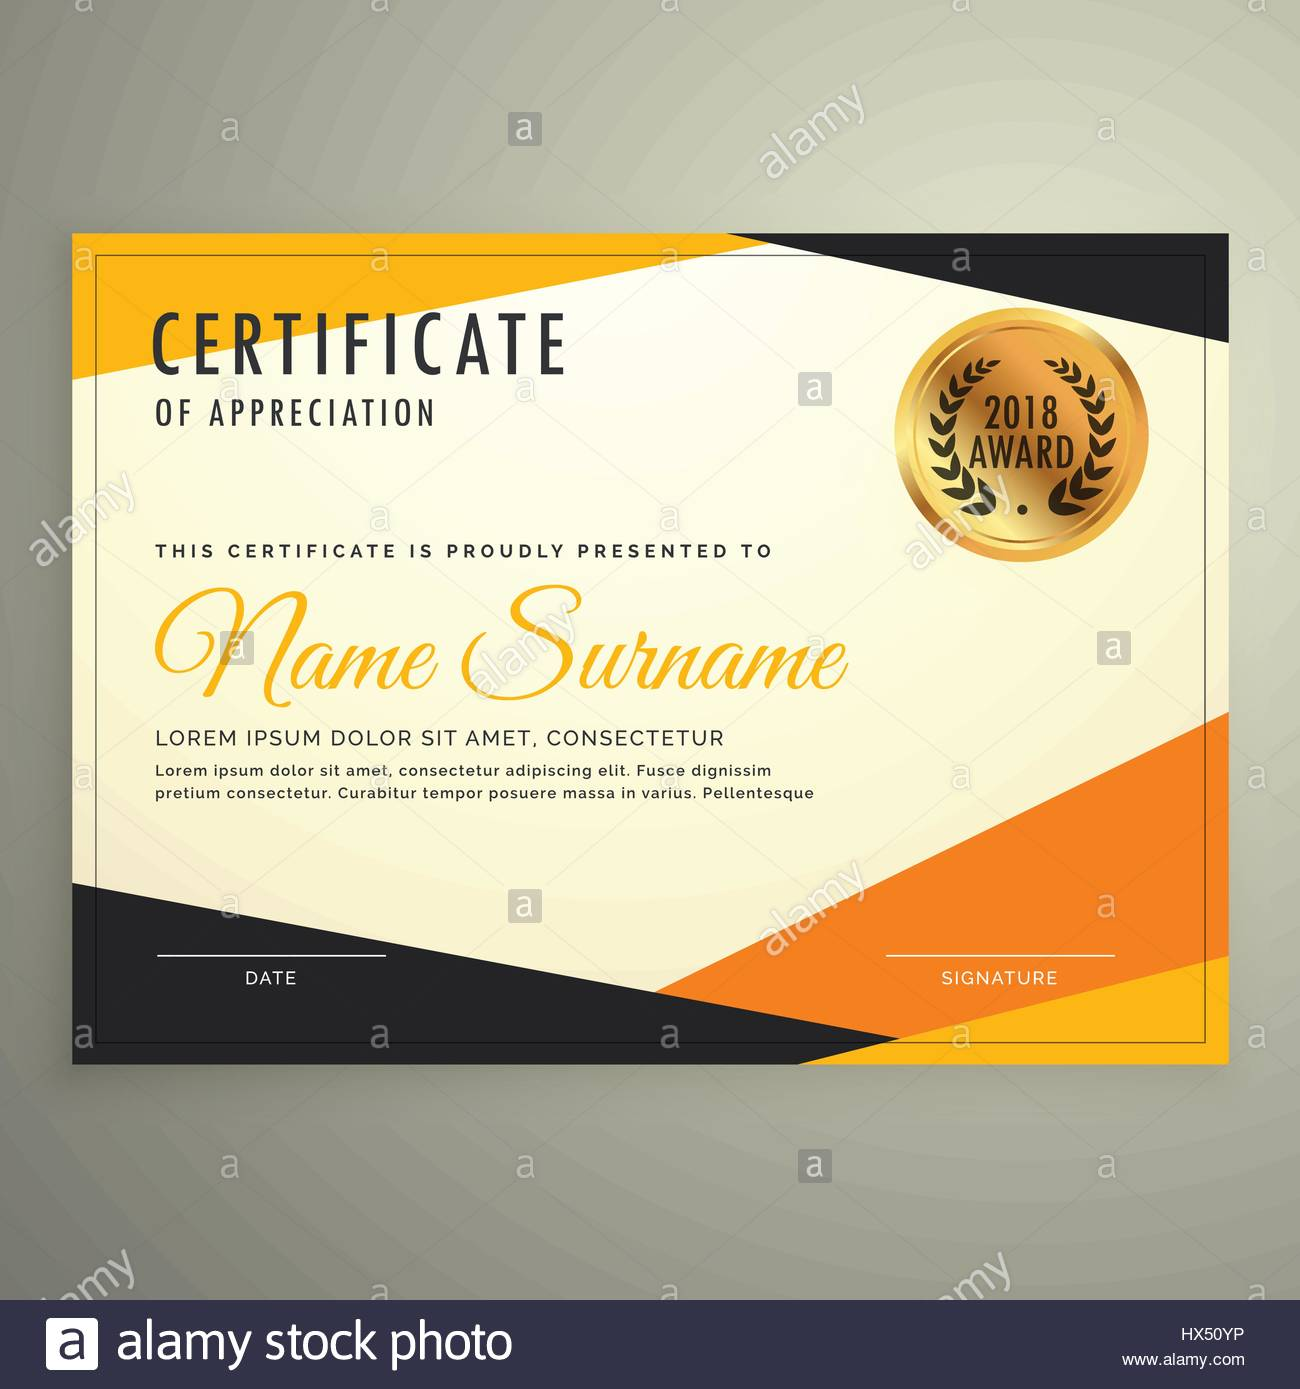 Certificate design template with clean modern orange and black certificate design template with clean modern orange and black shapes altavistaventures Image collections